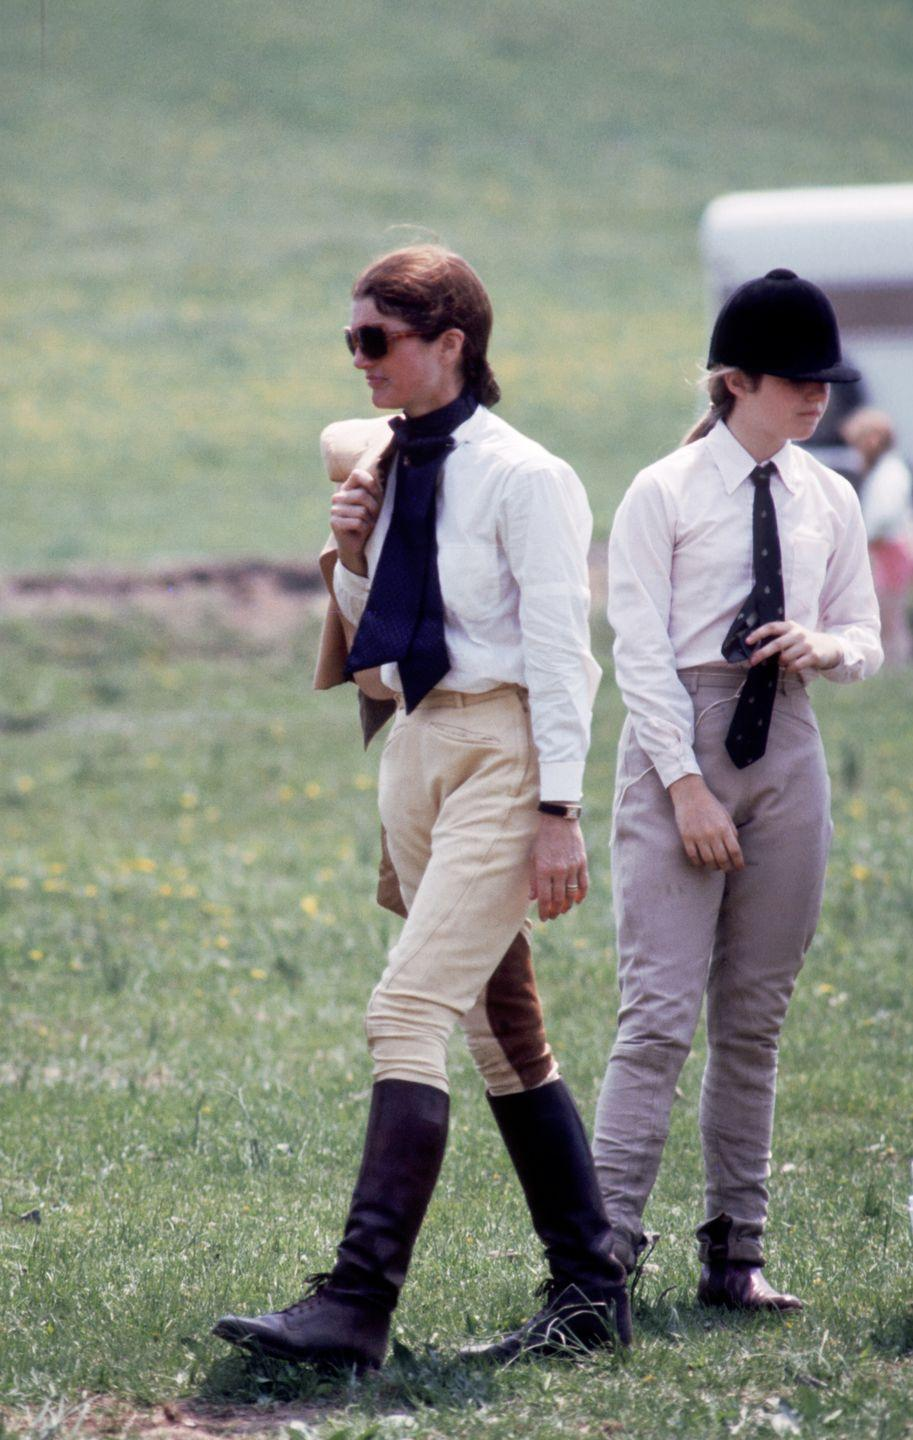 <p>Jackie, a life-long equestrian, wears riding gear while at a horse show with her family. </p>